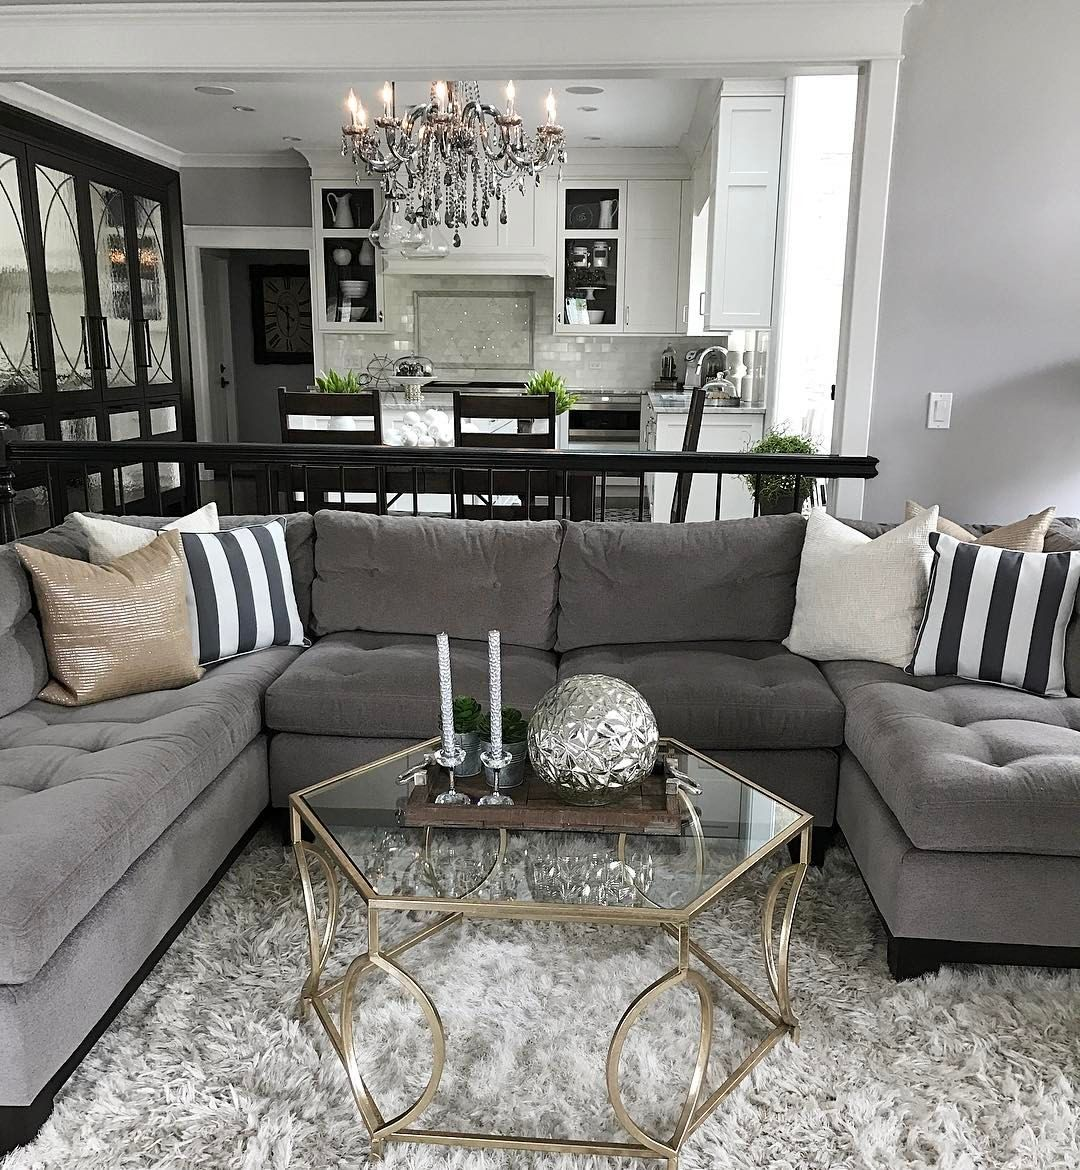 Change Up The Gray Couch With And Chic Black White Striped Accents Living Room Decor